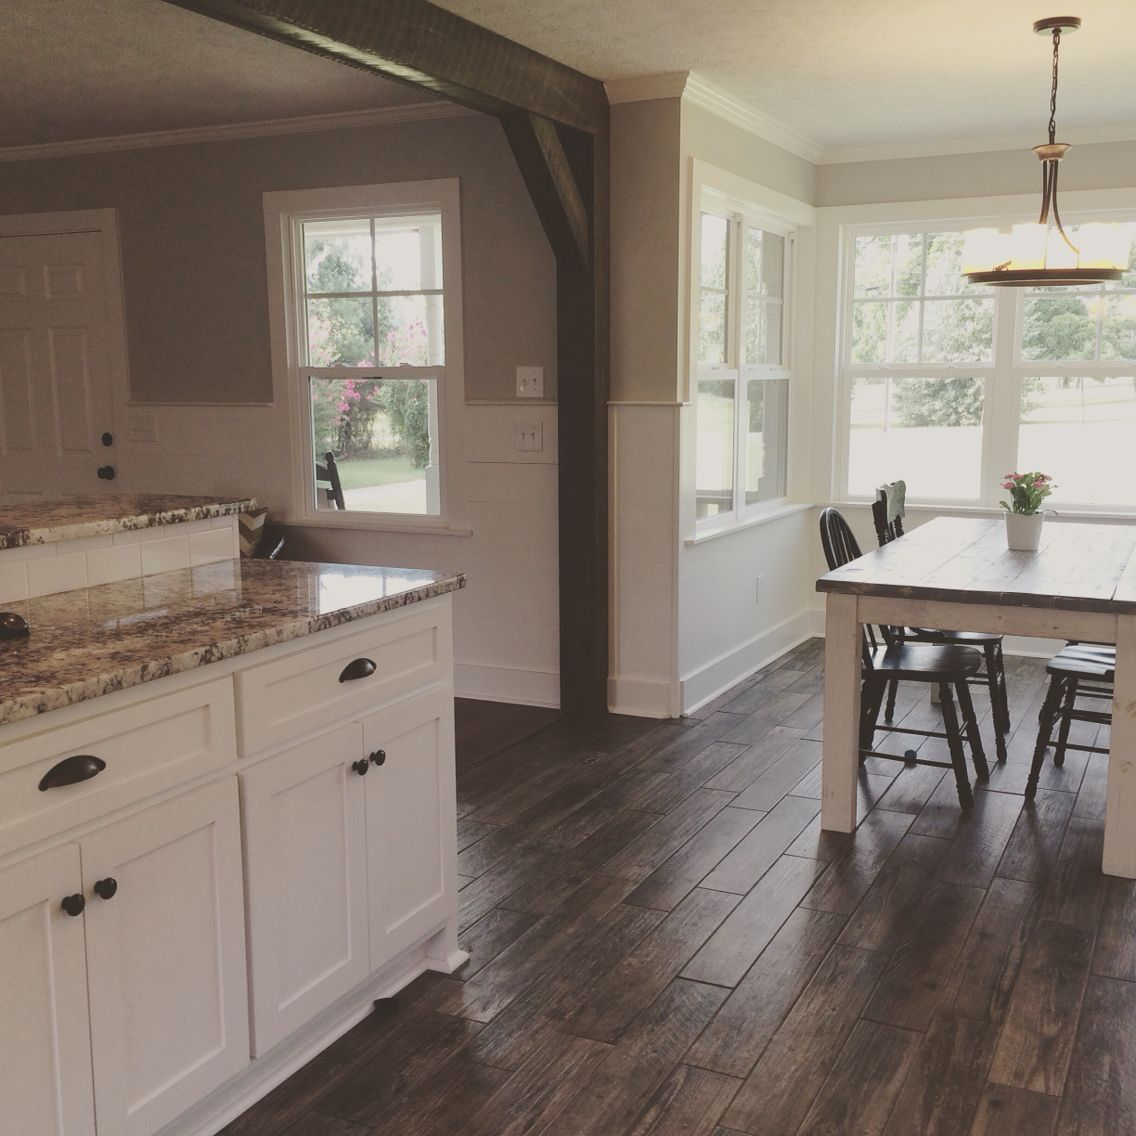 Kitchen Wood Tile Floor Aid Refrigerator Parts Remodel Farmhouse Style Shiplap Cold Spring